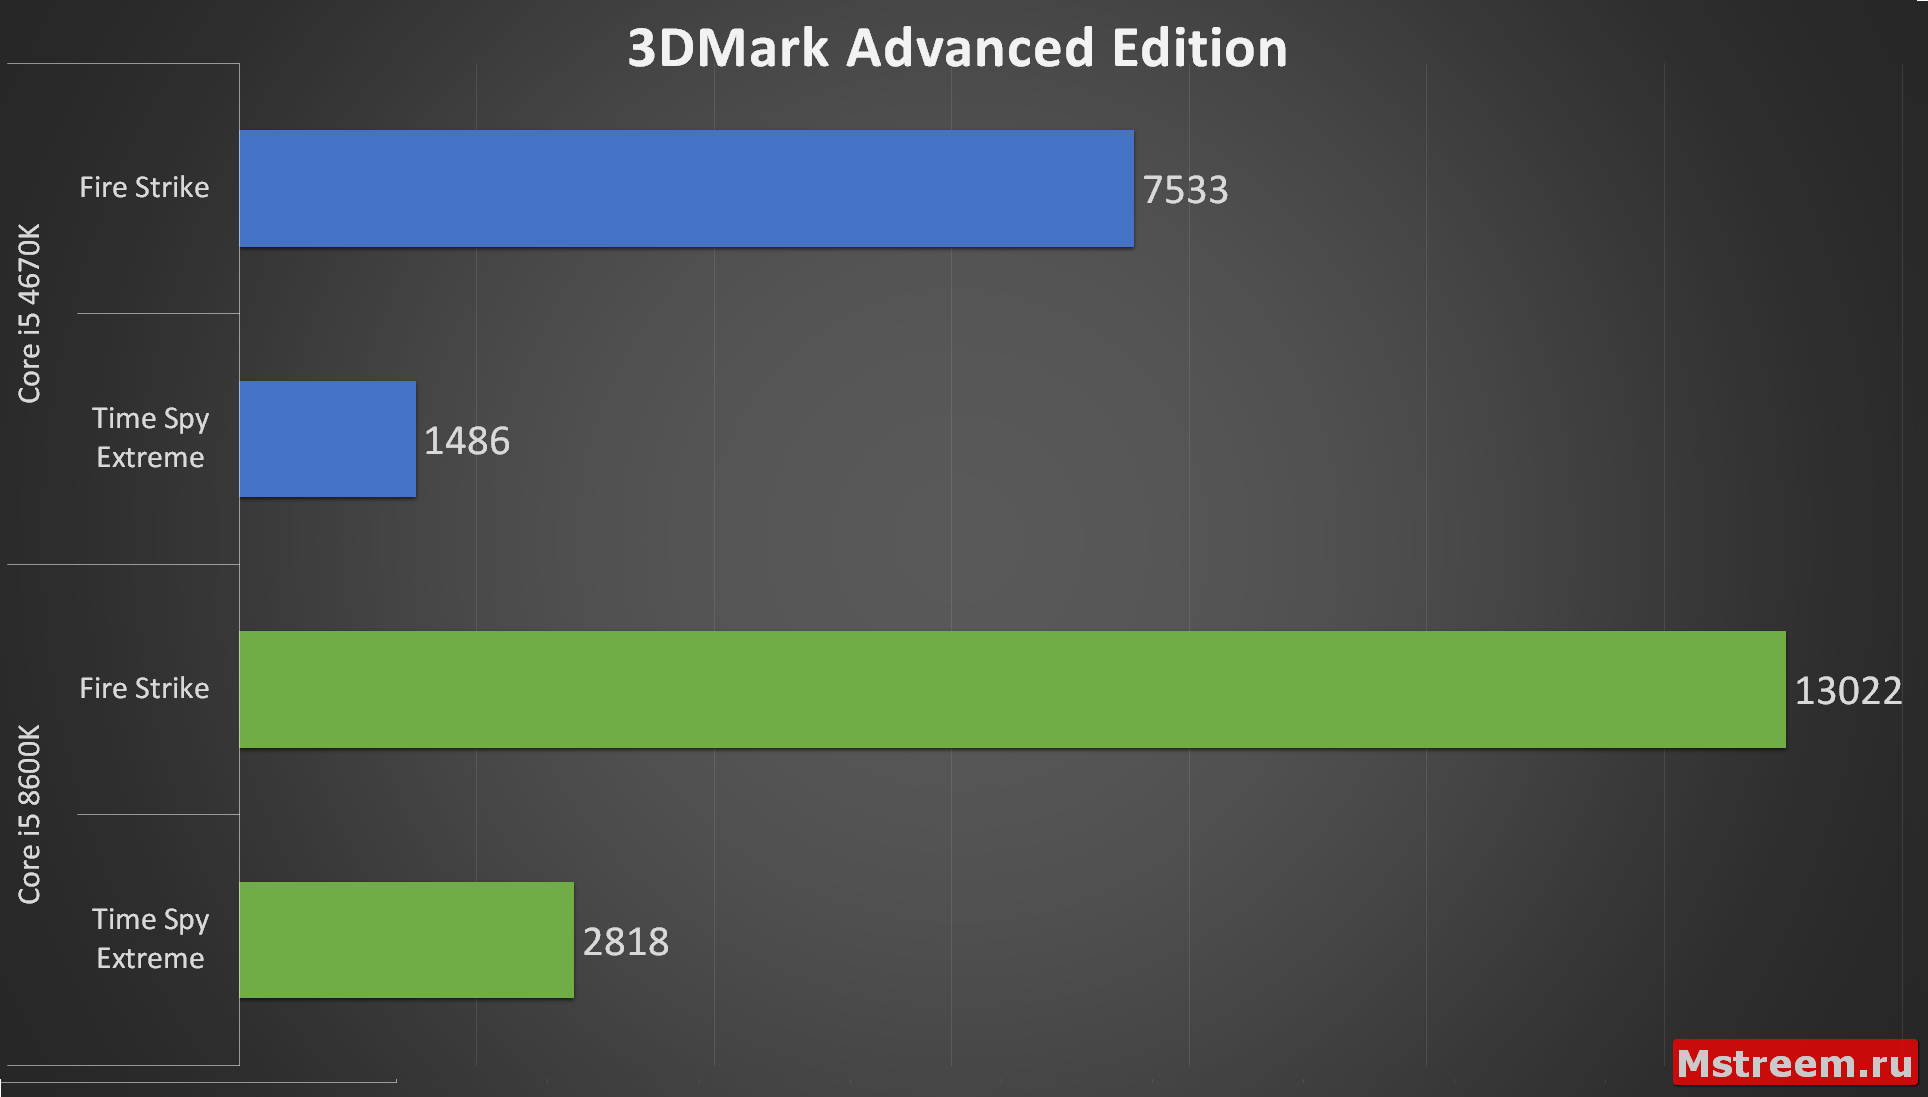 3DMark Advanced Edition (Intel Core i5 4670K VS 8600K)